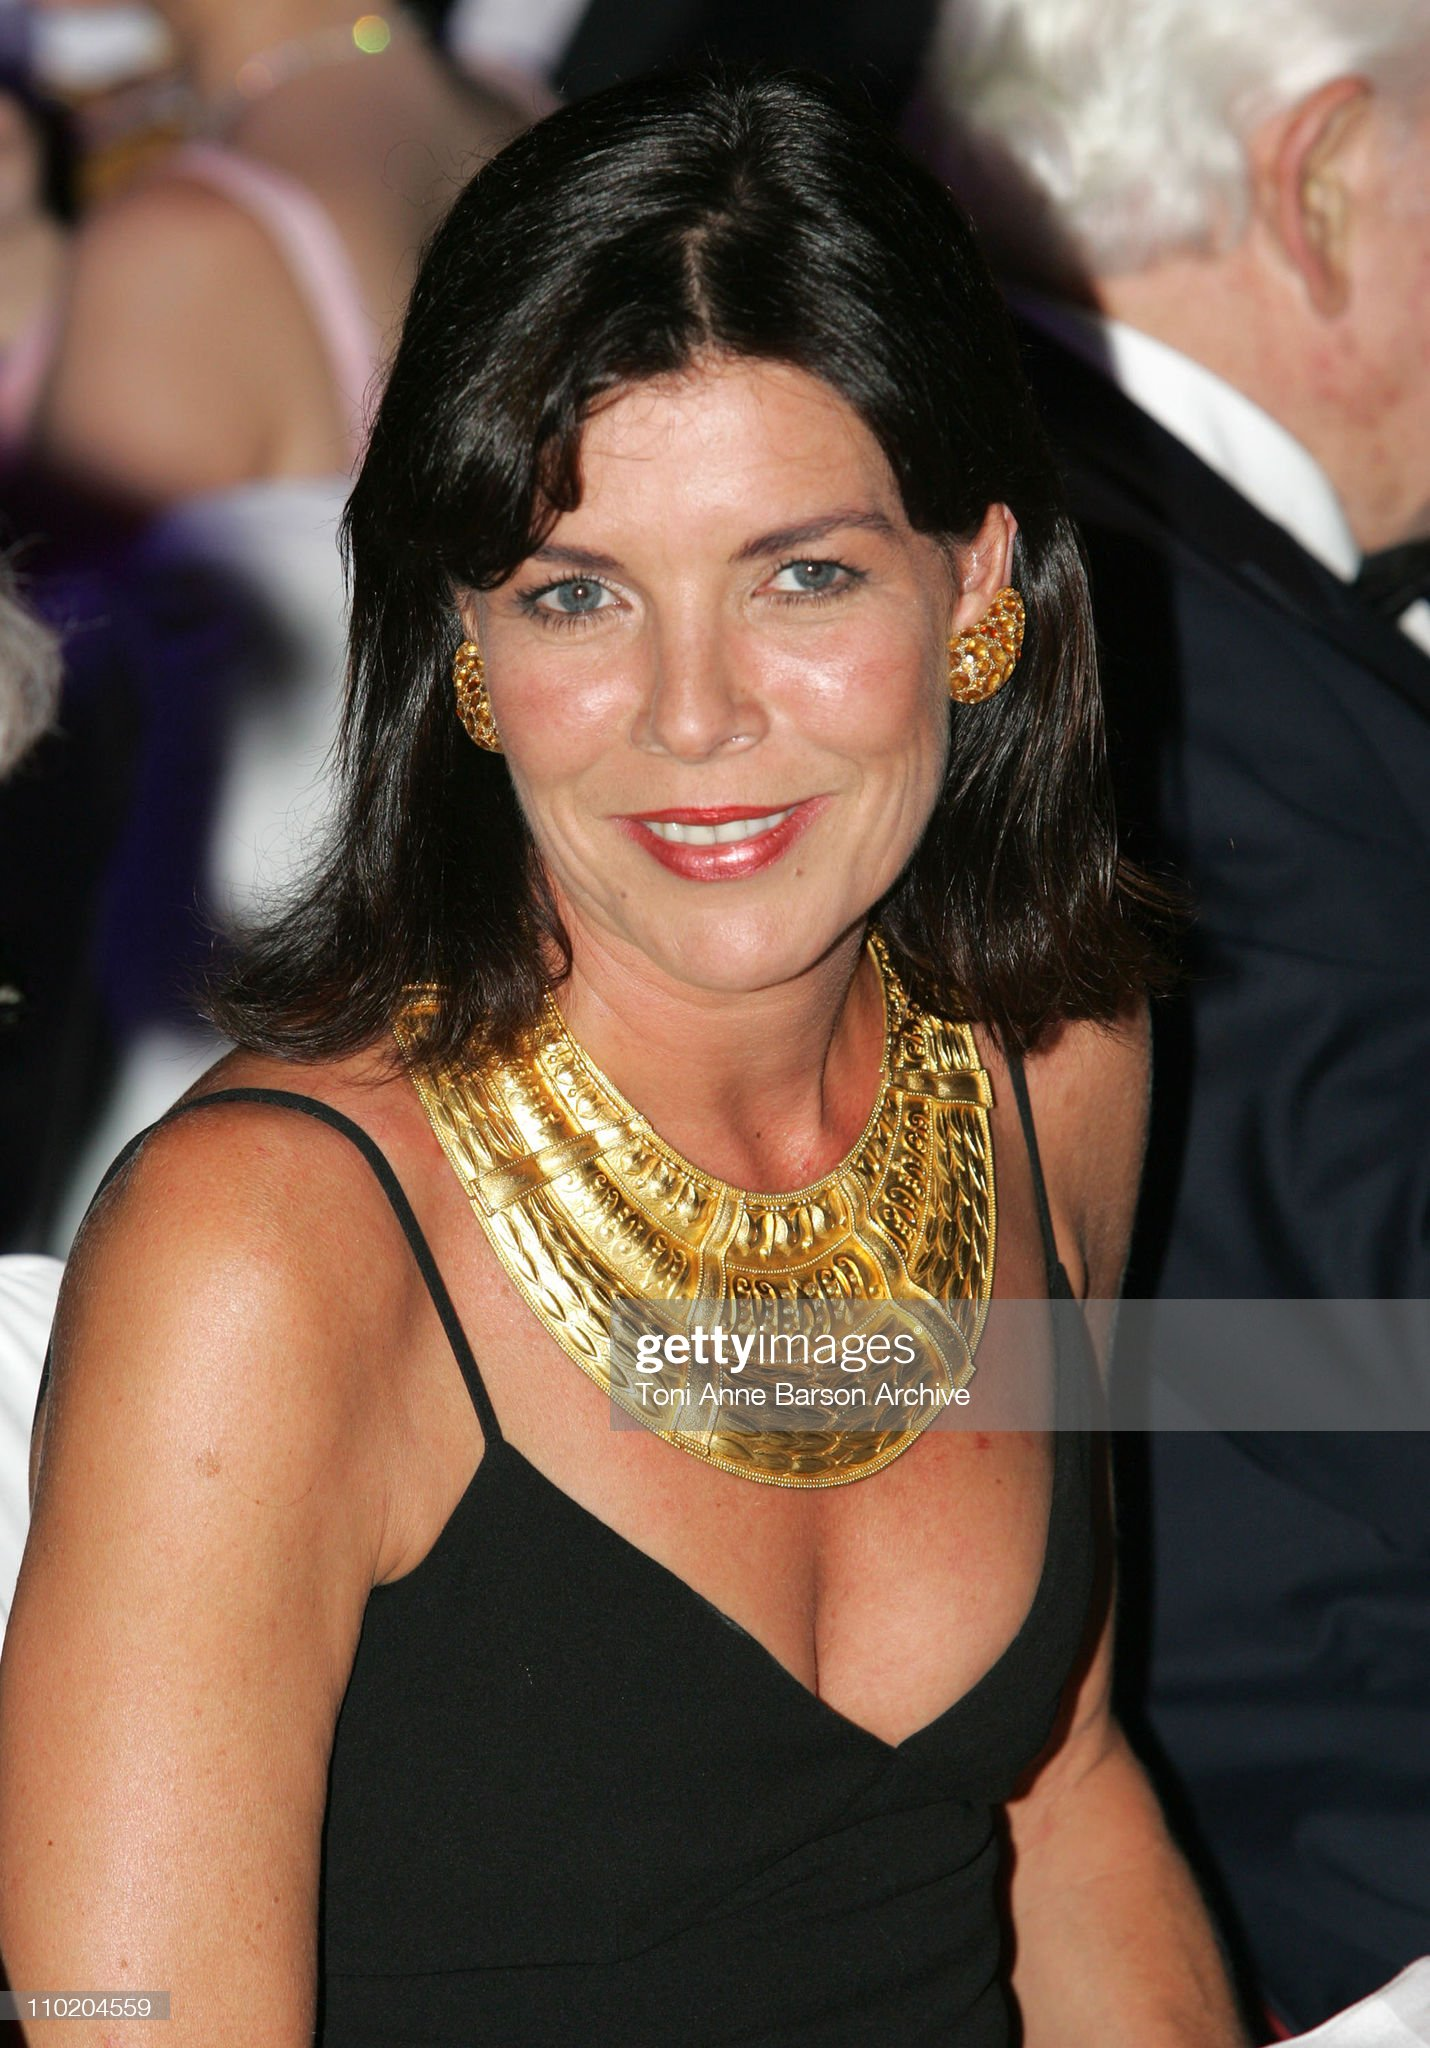 Monaco Red Cross Ball 2004 - Dinner : News Photo